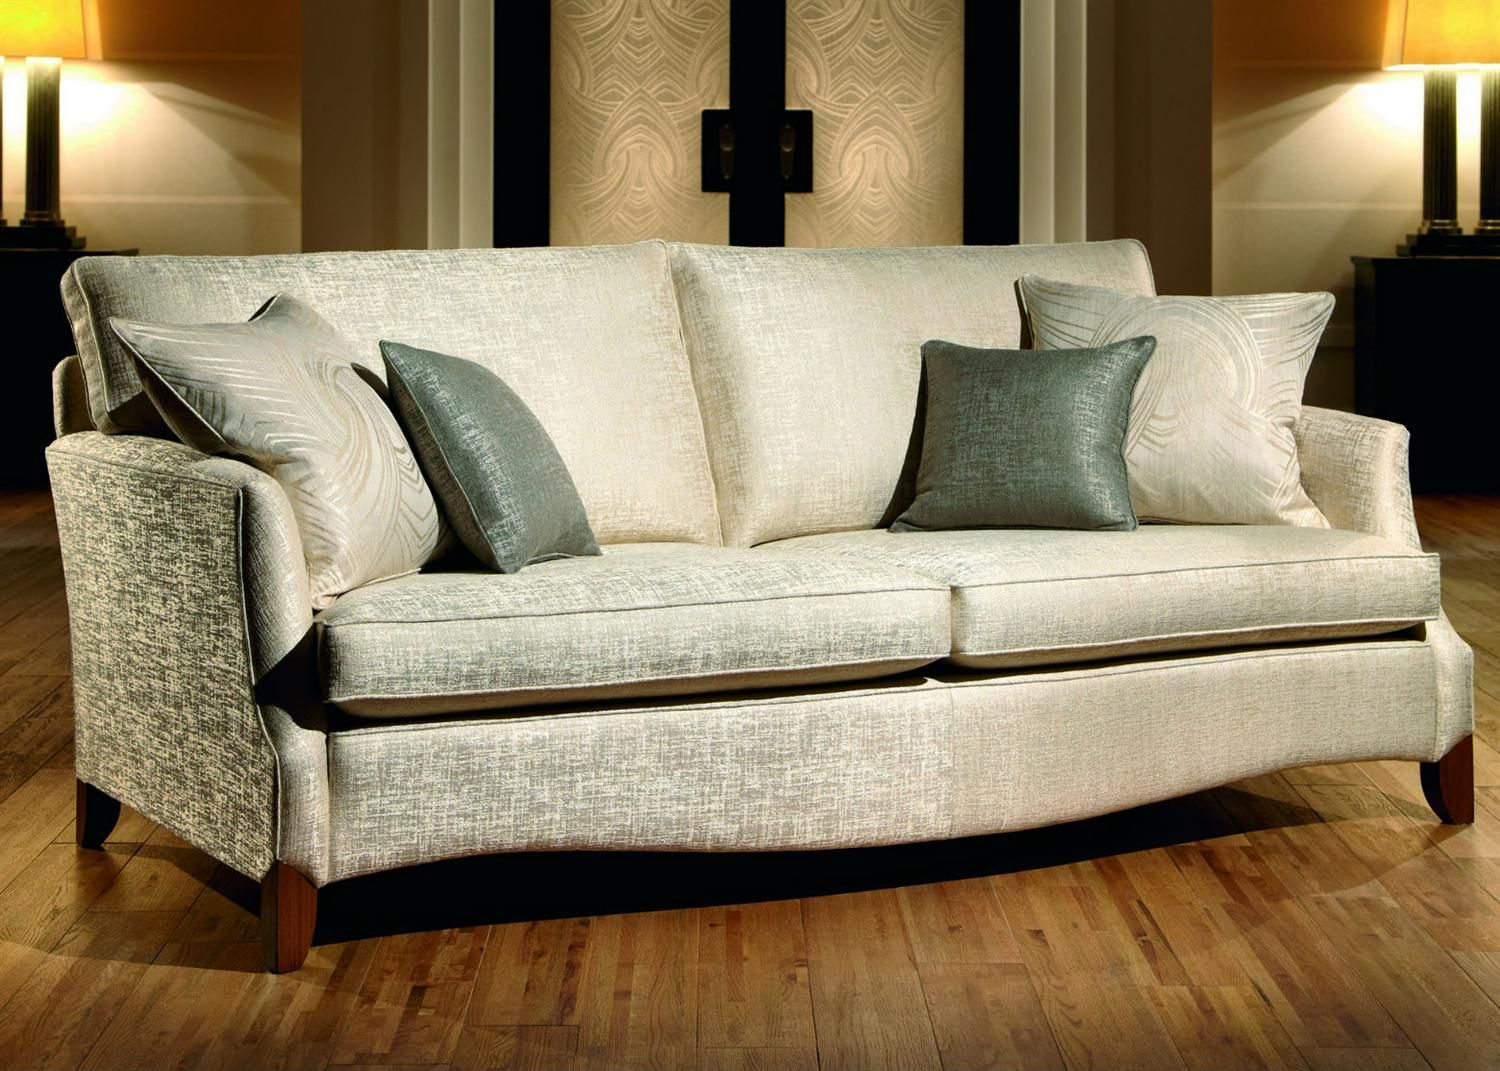 domus sutherland sofa collection from george tannahill & sons